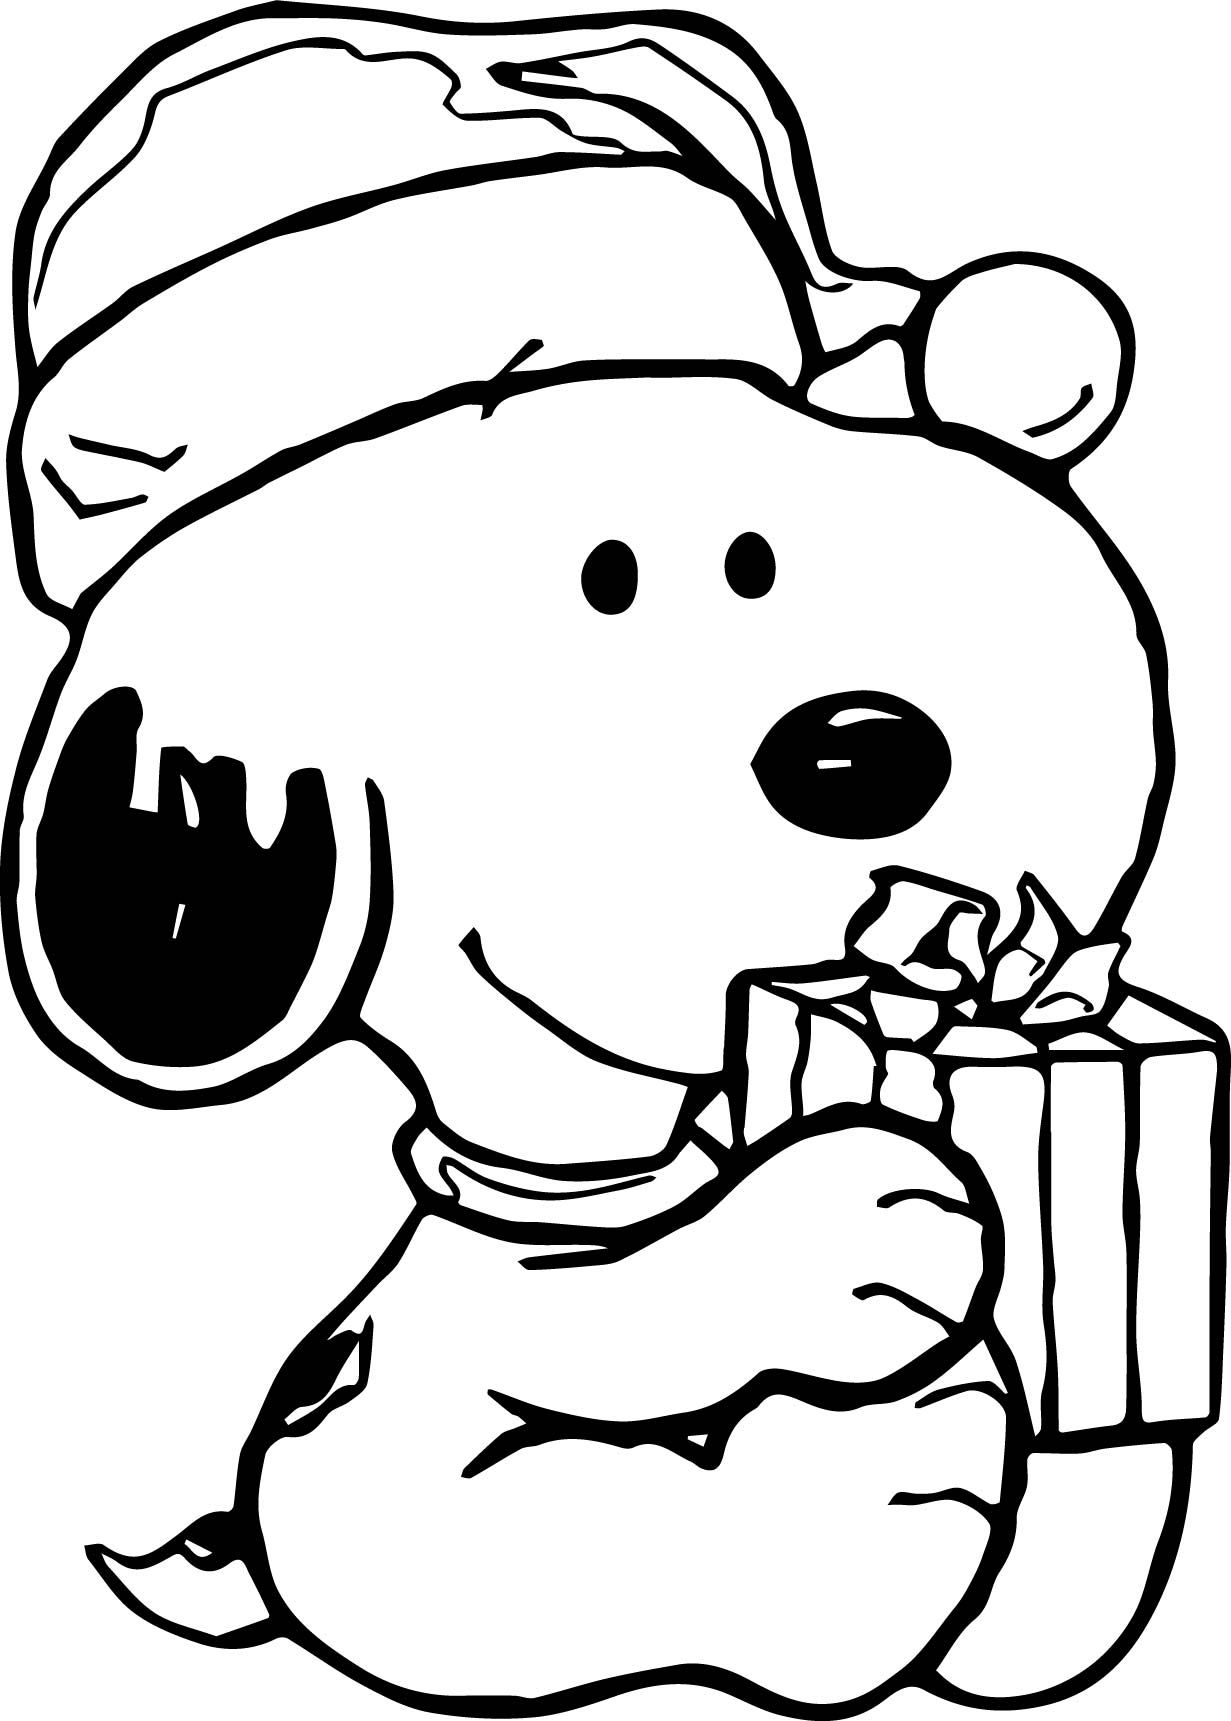 snoopy coloring book pages | cool Baby Snoopy Christmas Coloring Page | Snoopy coloring ...